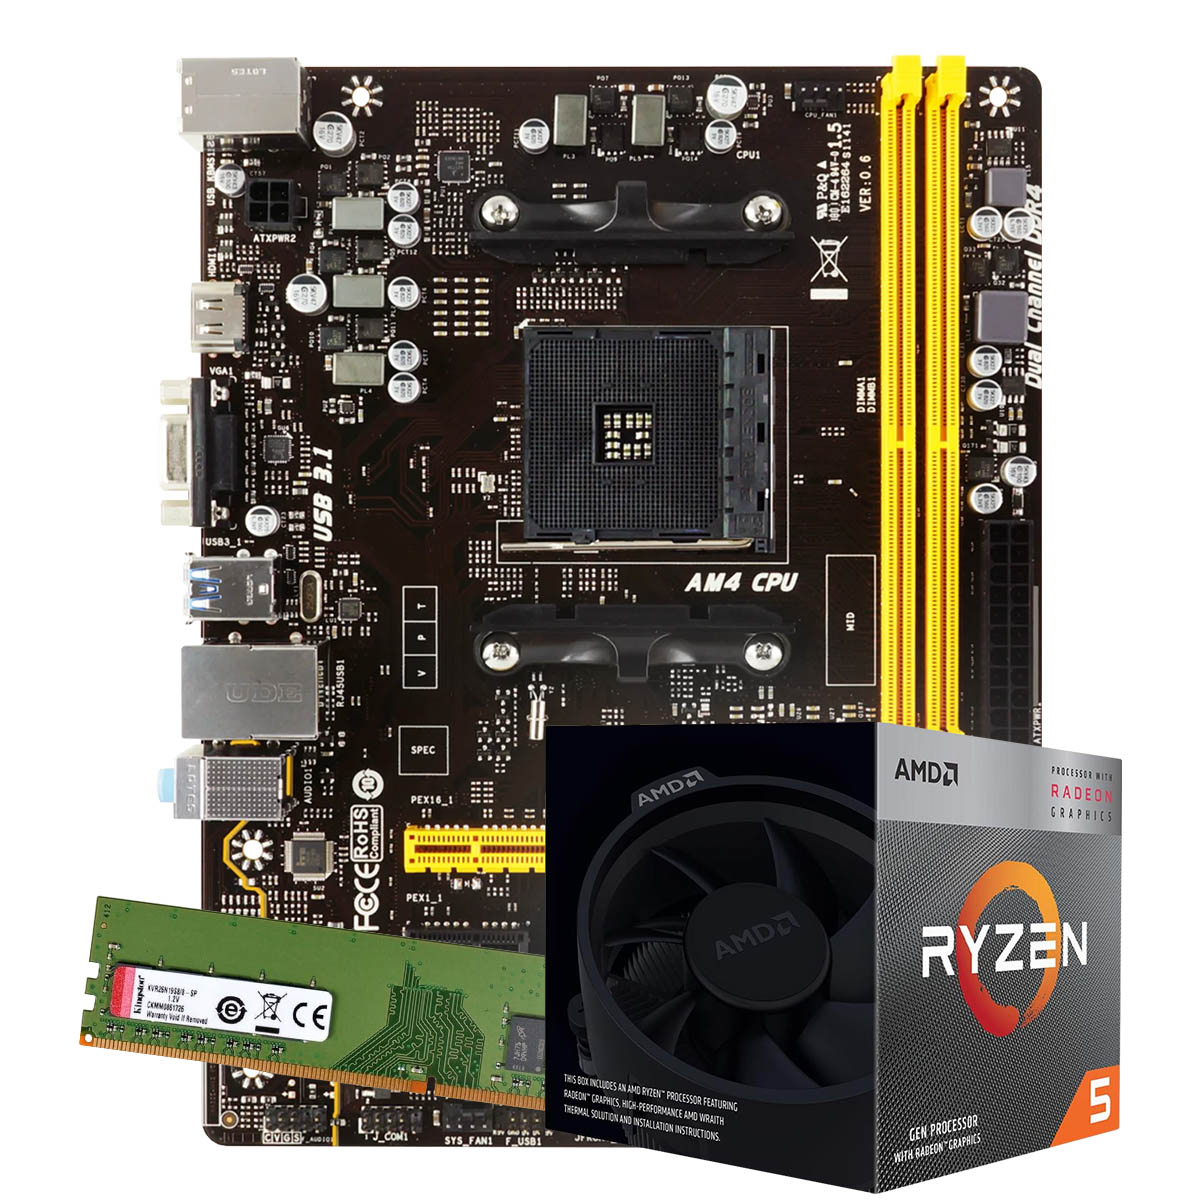 Kit Upgrade AMD Ryzen 5 3400G 3.7Ghz, Placa Mãe Biostar A320MH DDR4, 8GB DDR4